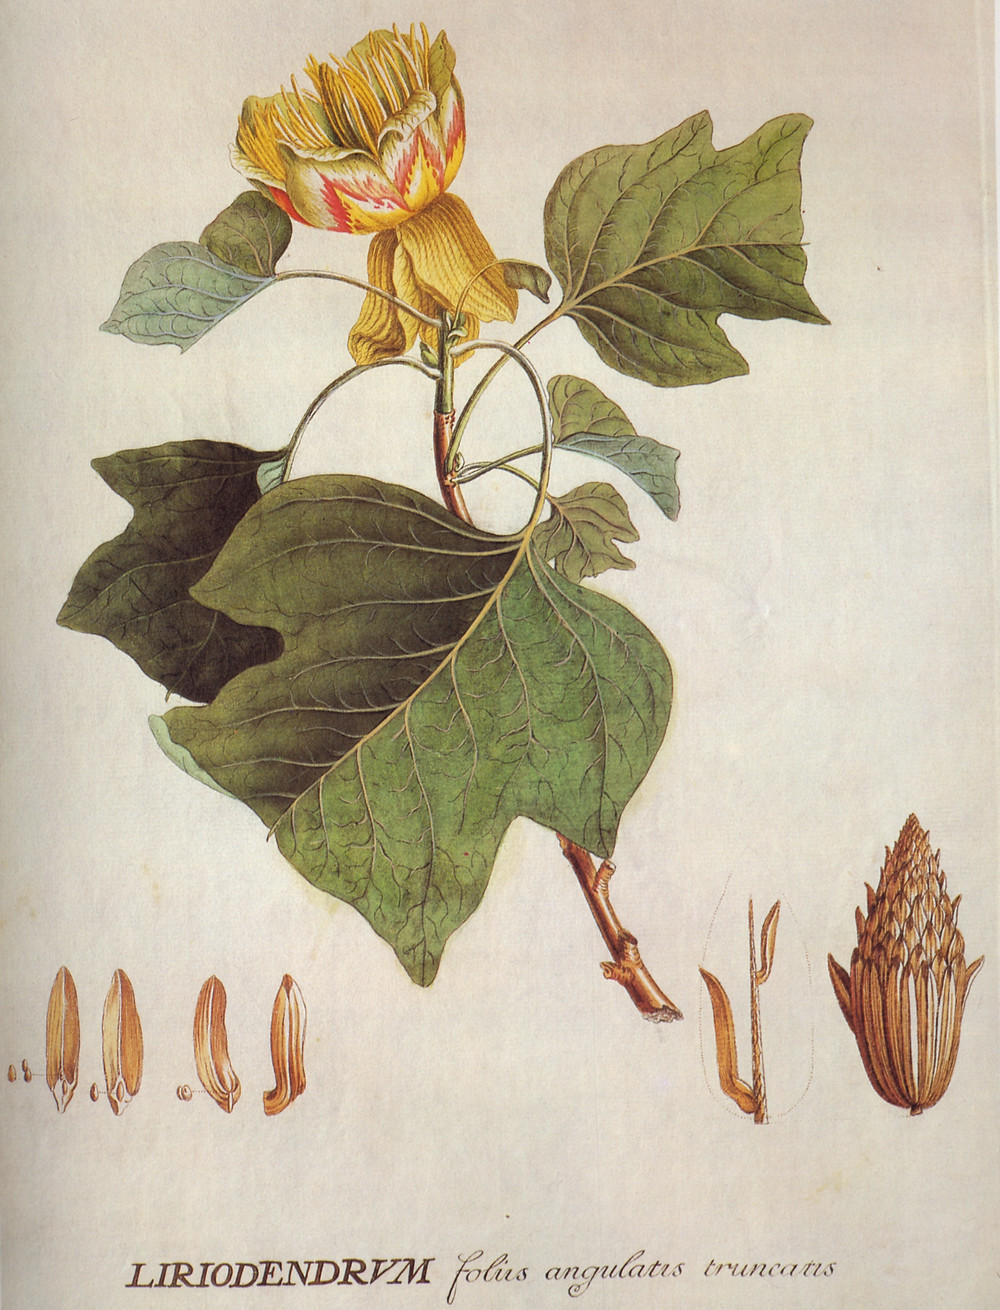 Liriodendron by Ehret